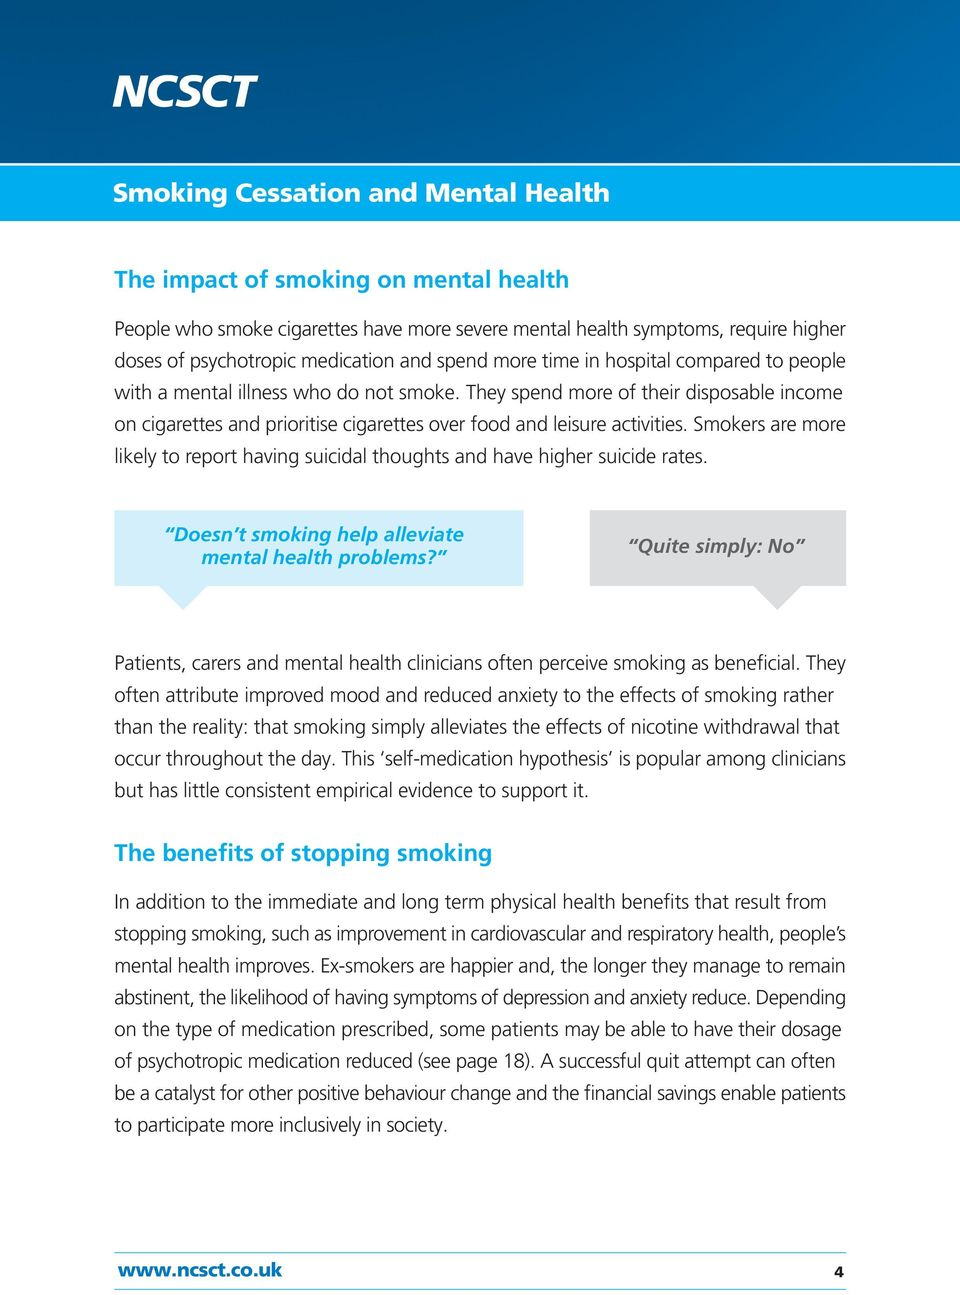 Smokers are more likely to report having suicidal thoughts and have higher suicide rates. Doesn t smoking help alleviate mental health problems?